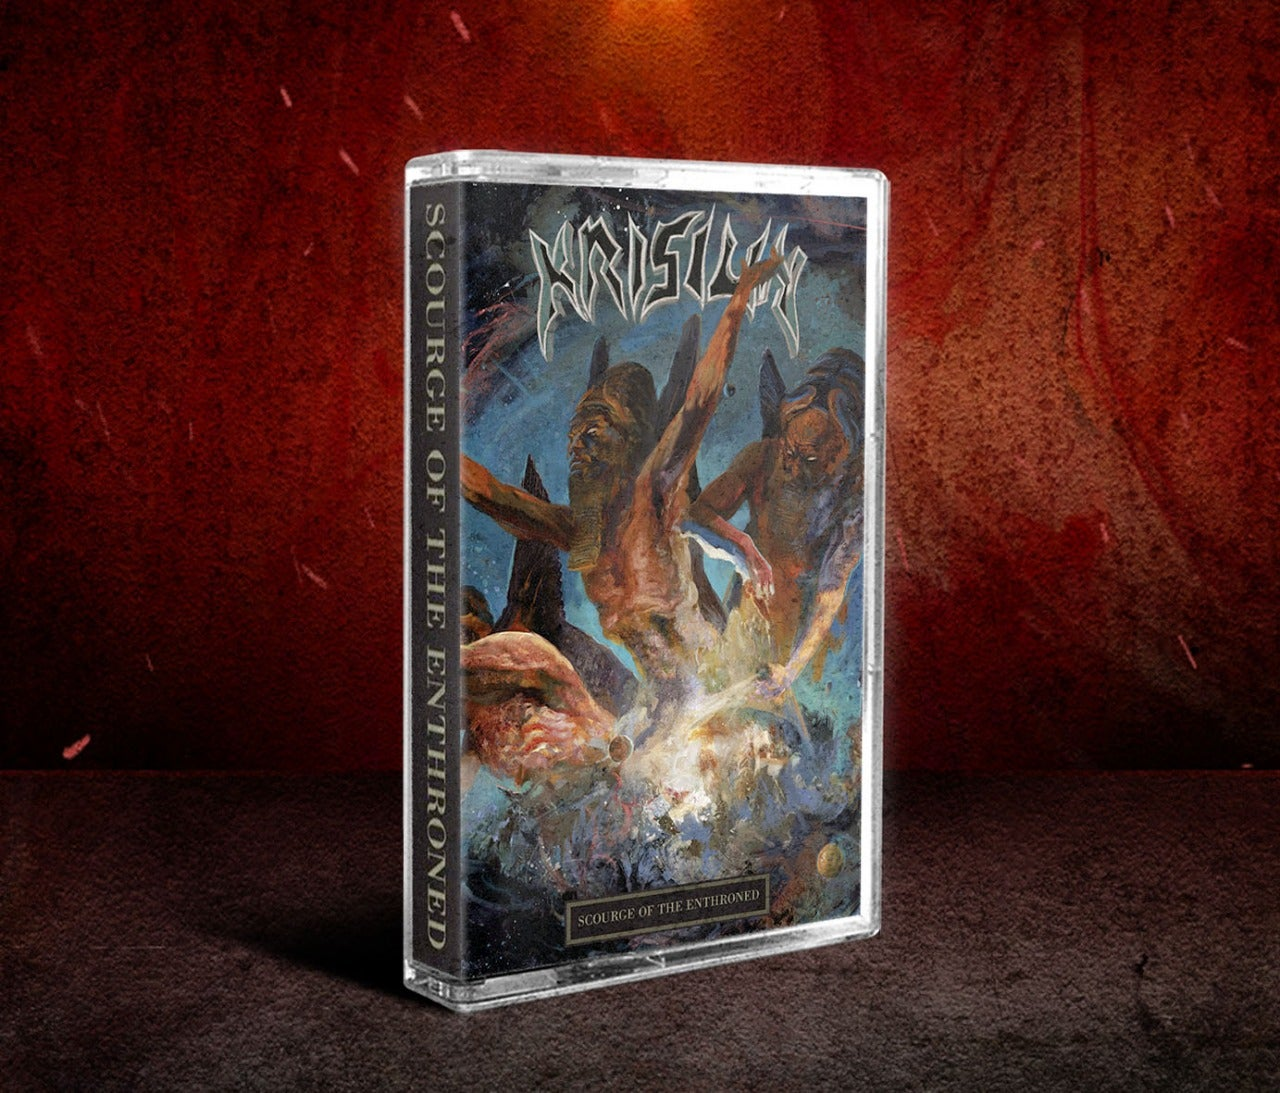 Image of KRISIUN - Scourge Of The Enthroned CD & Tape